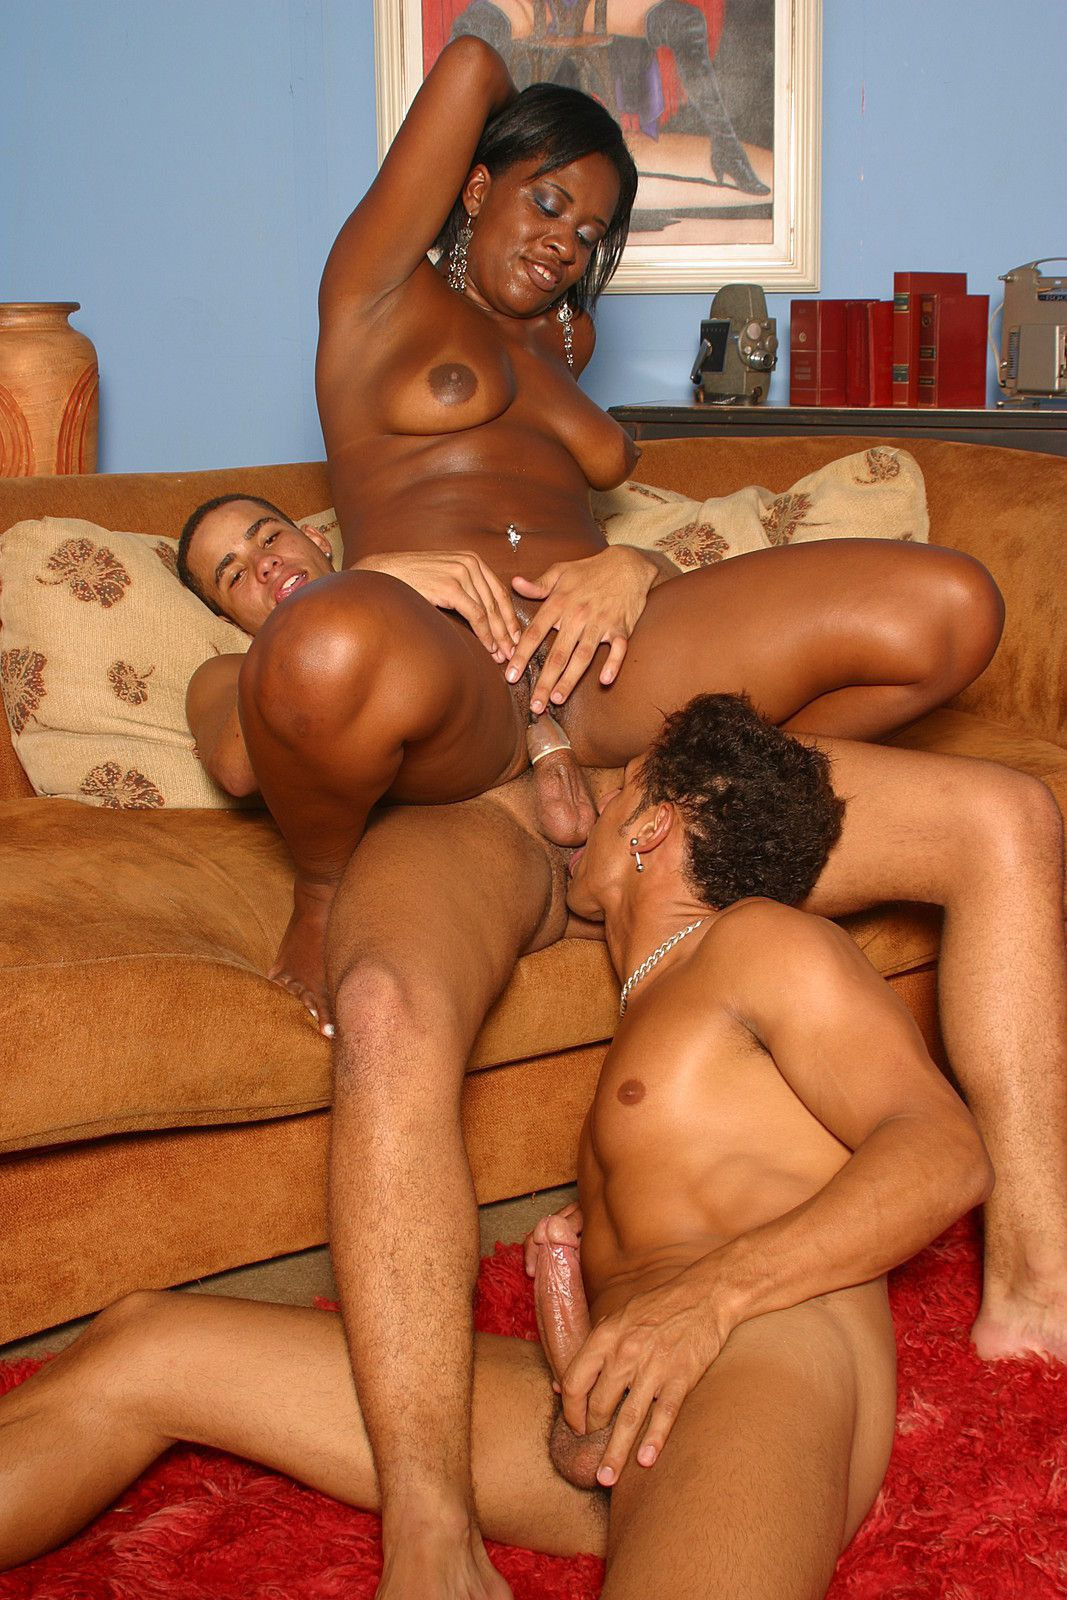 Black bisexual threesome porn